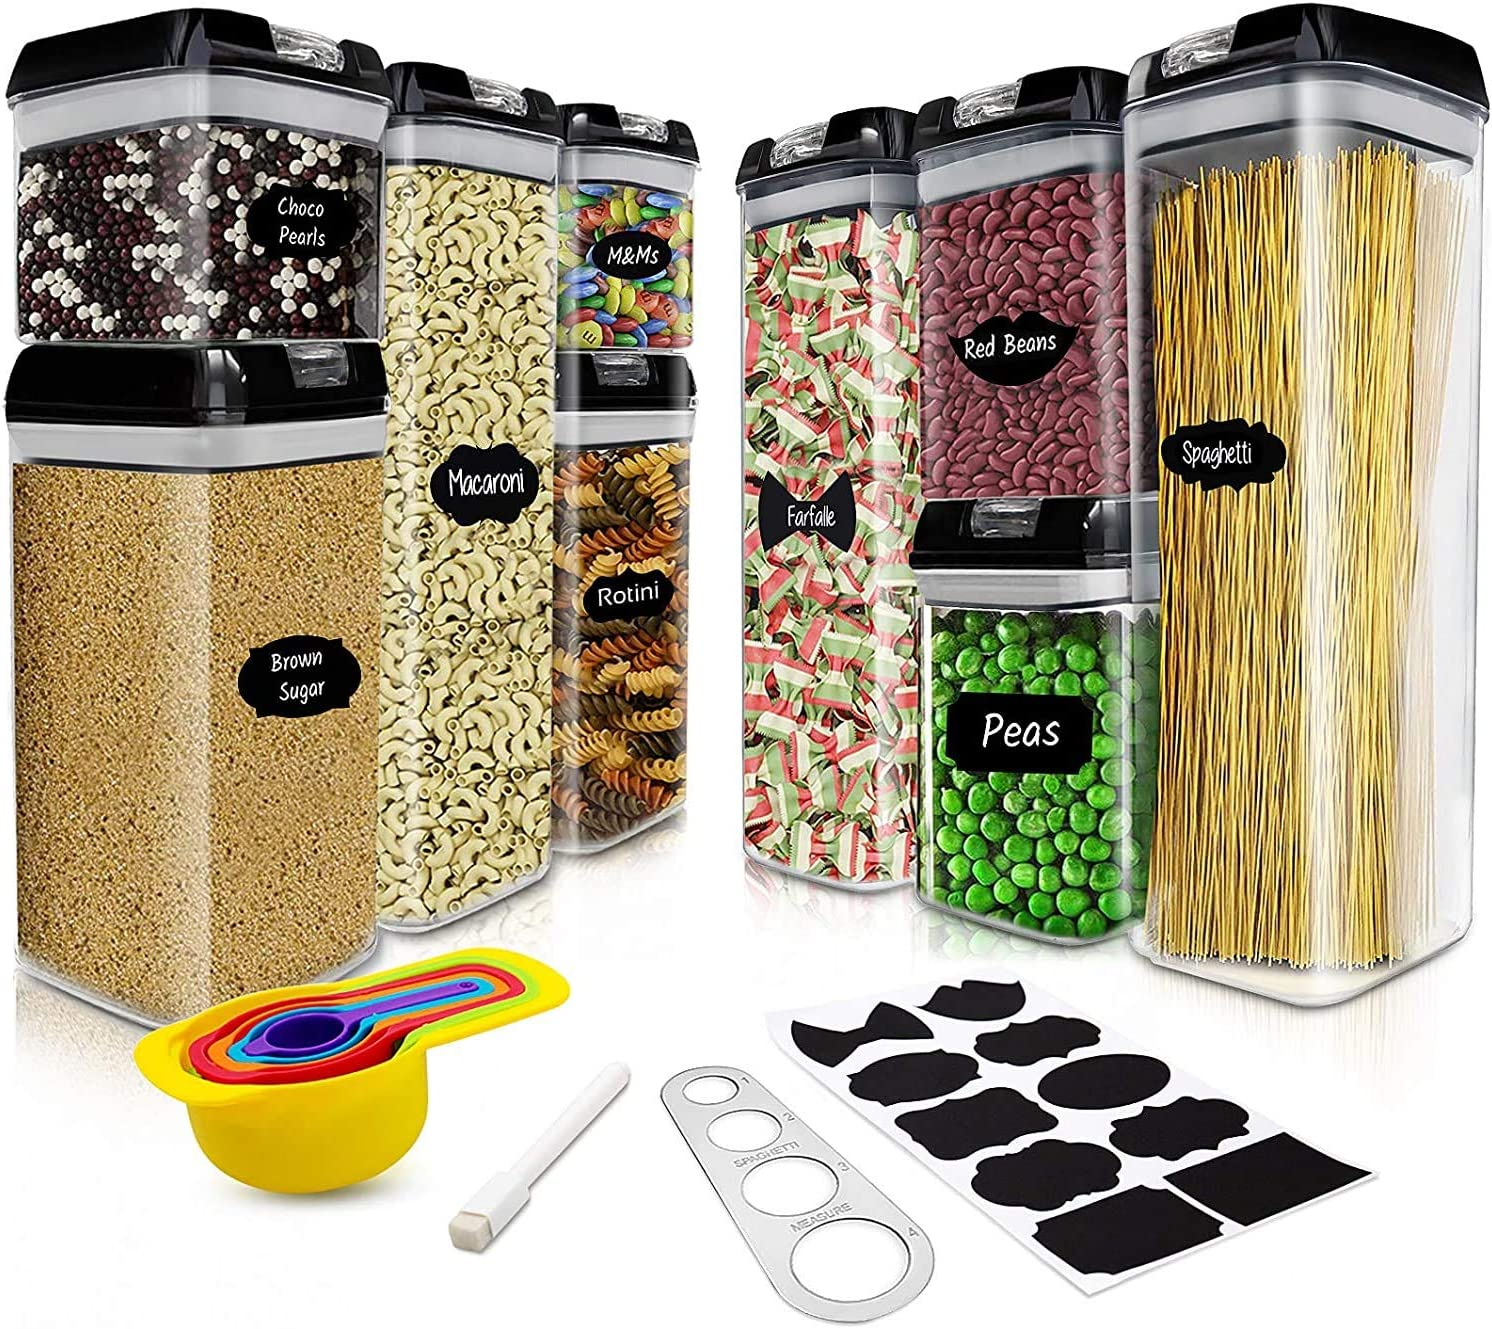 Airtight Food Storage Container Set - 9 PC Set/All Same Size - Labels & Marker - Kitchen & Pantry Organization Dry Food Containers - BPA-Free - Clear Plastic Canisters with Improved Lids (Black)